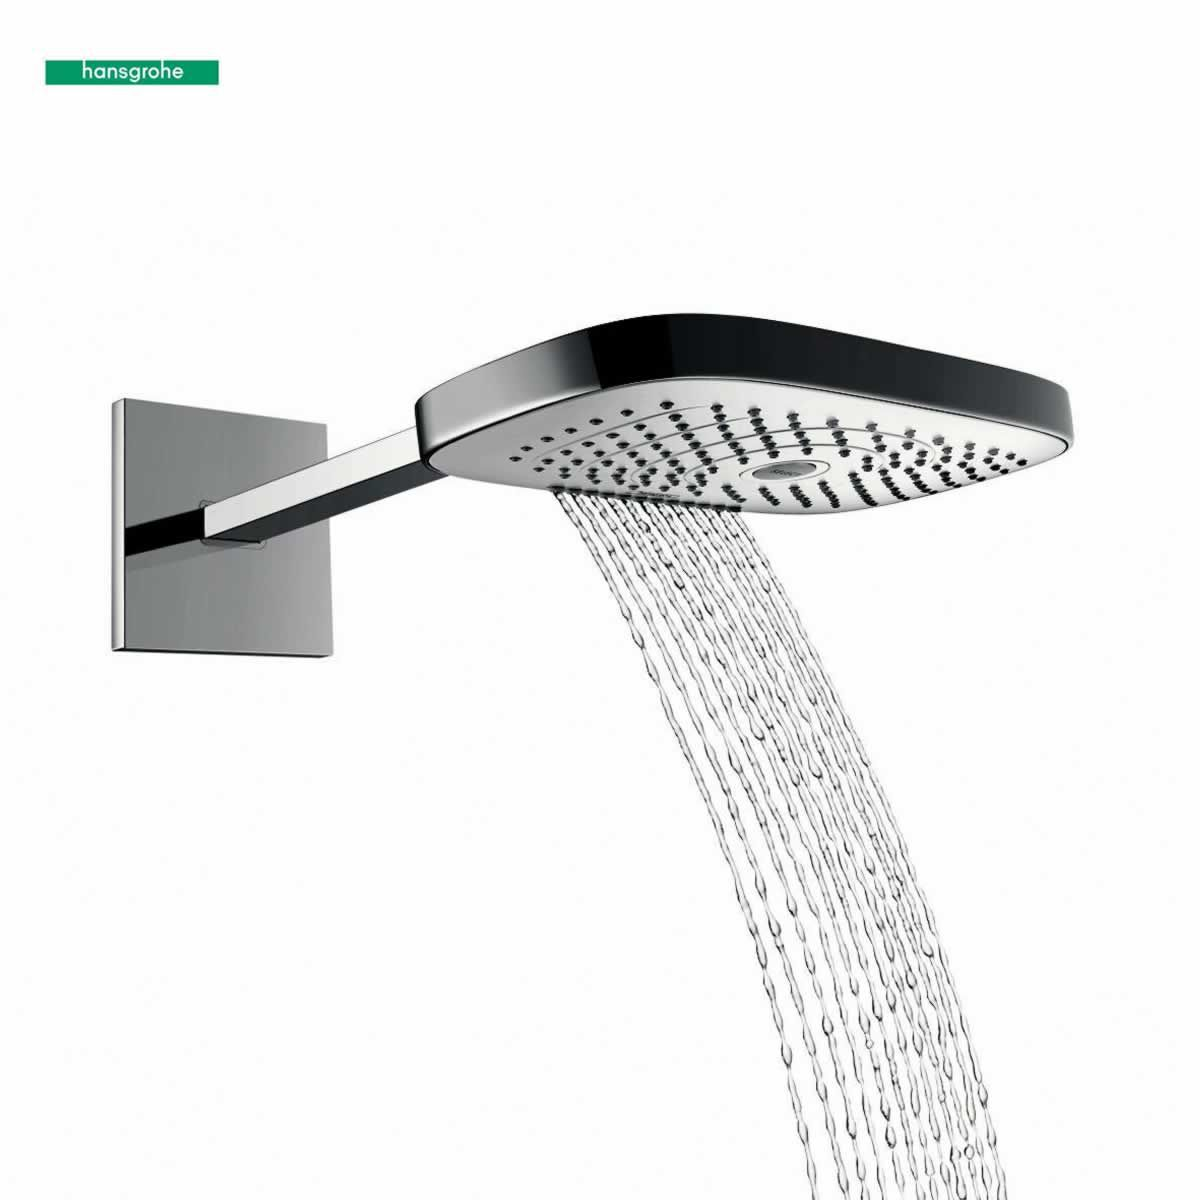 hansgrohe raindance select e 300 3jet overhead shower head uk bathrooms. Black Bedroom Furniture Sets. Home Design Ideas